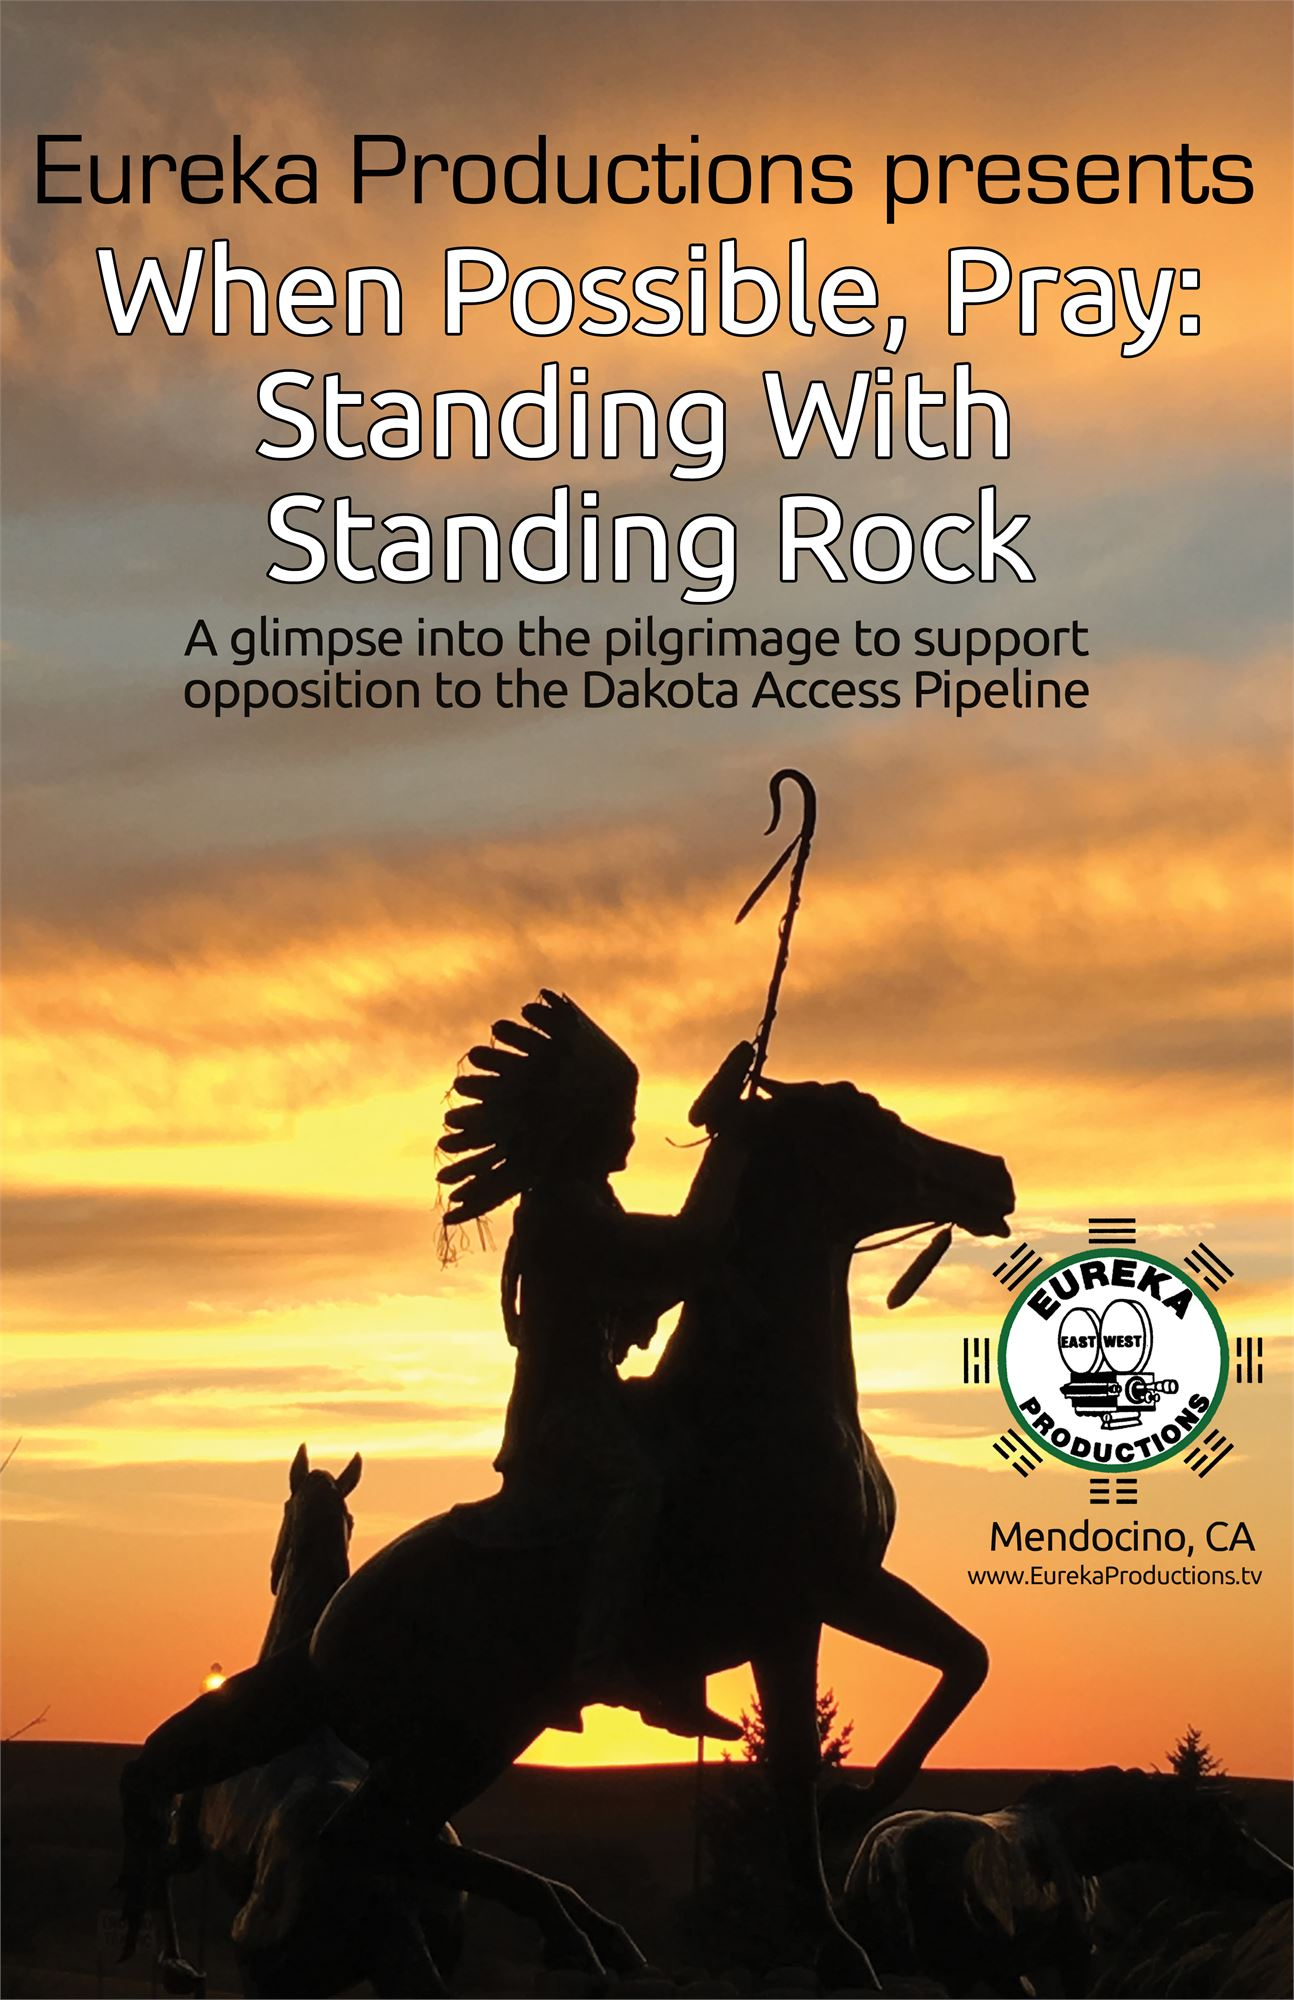 When Possible, Pray: Standing With Standing Rock